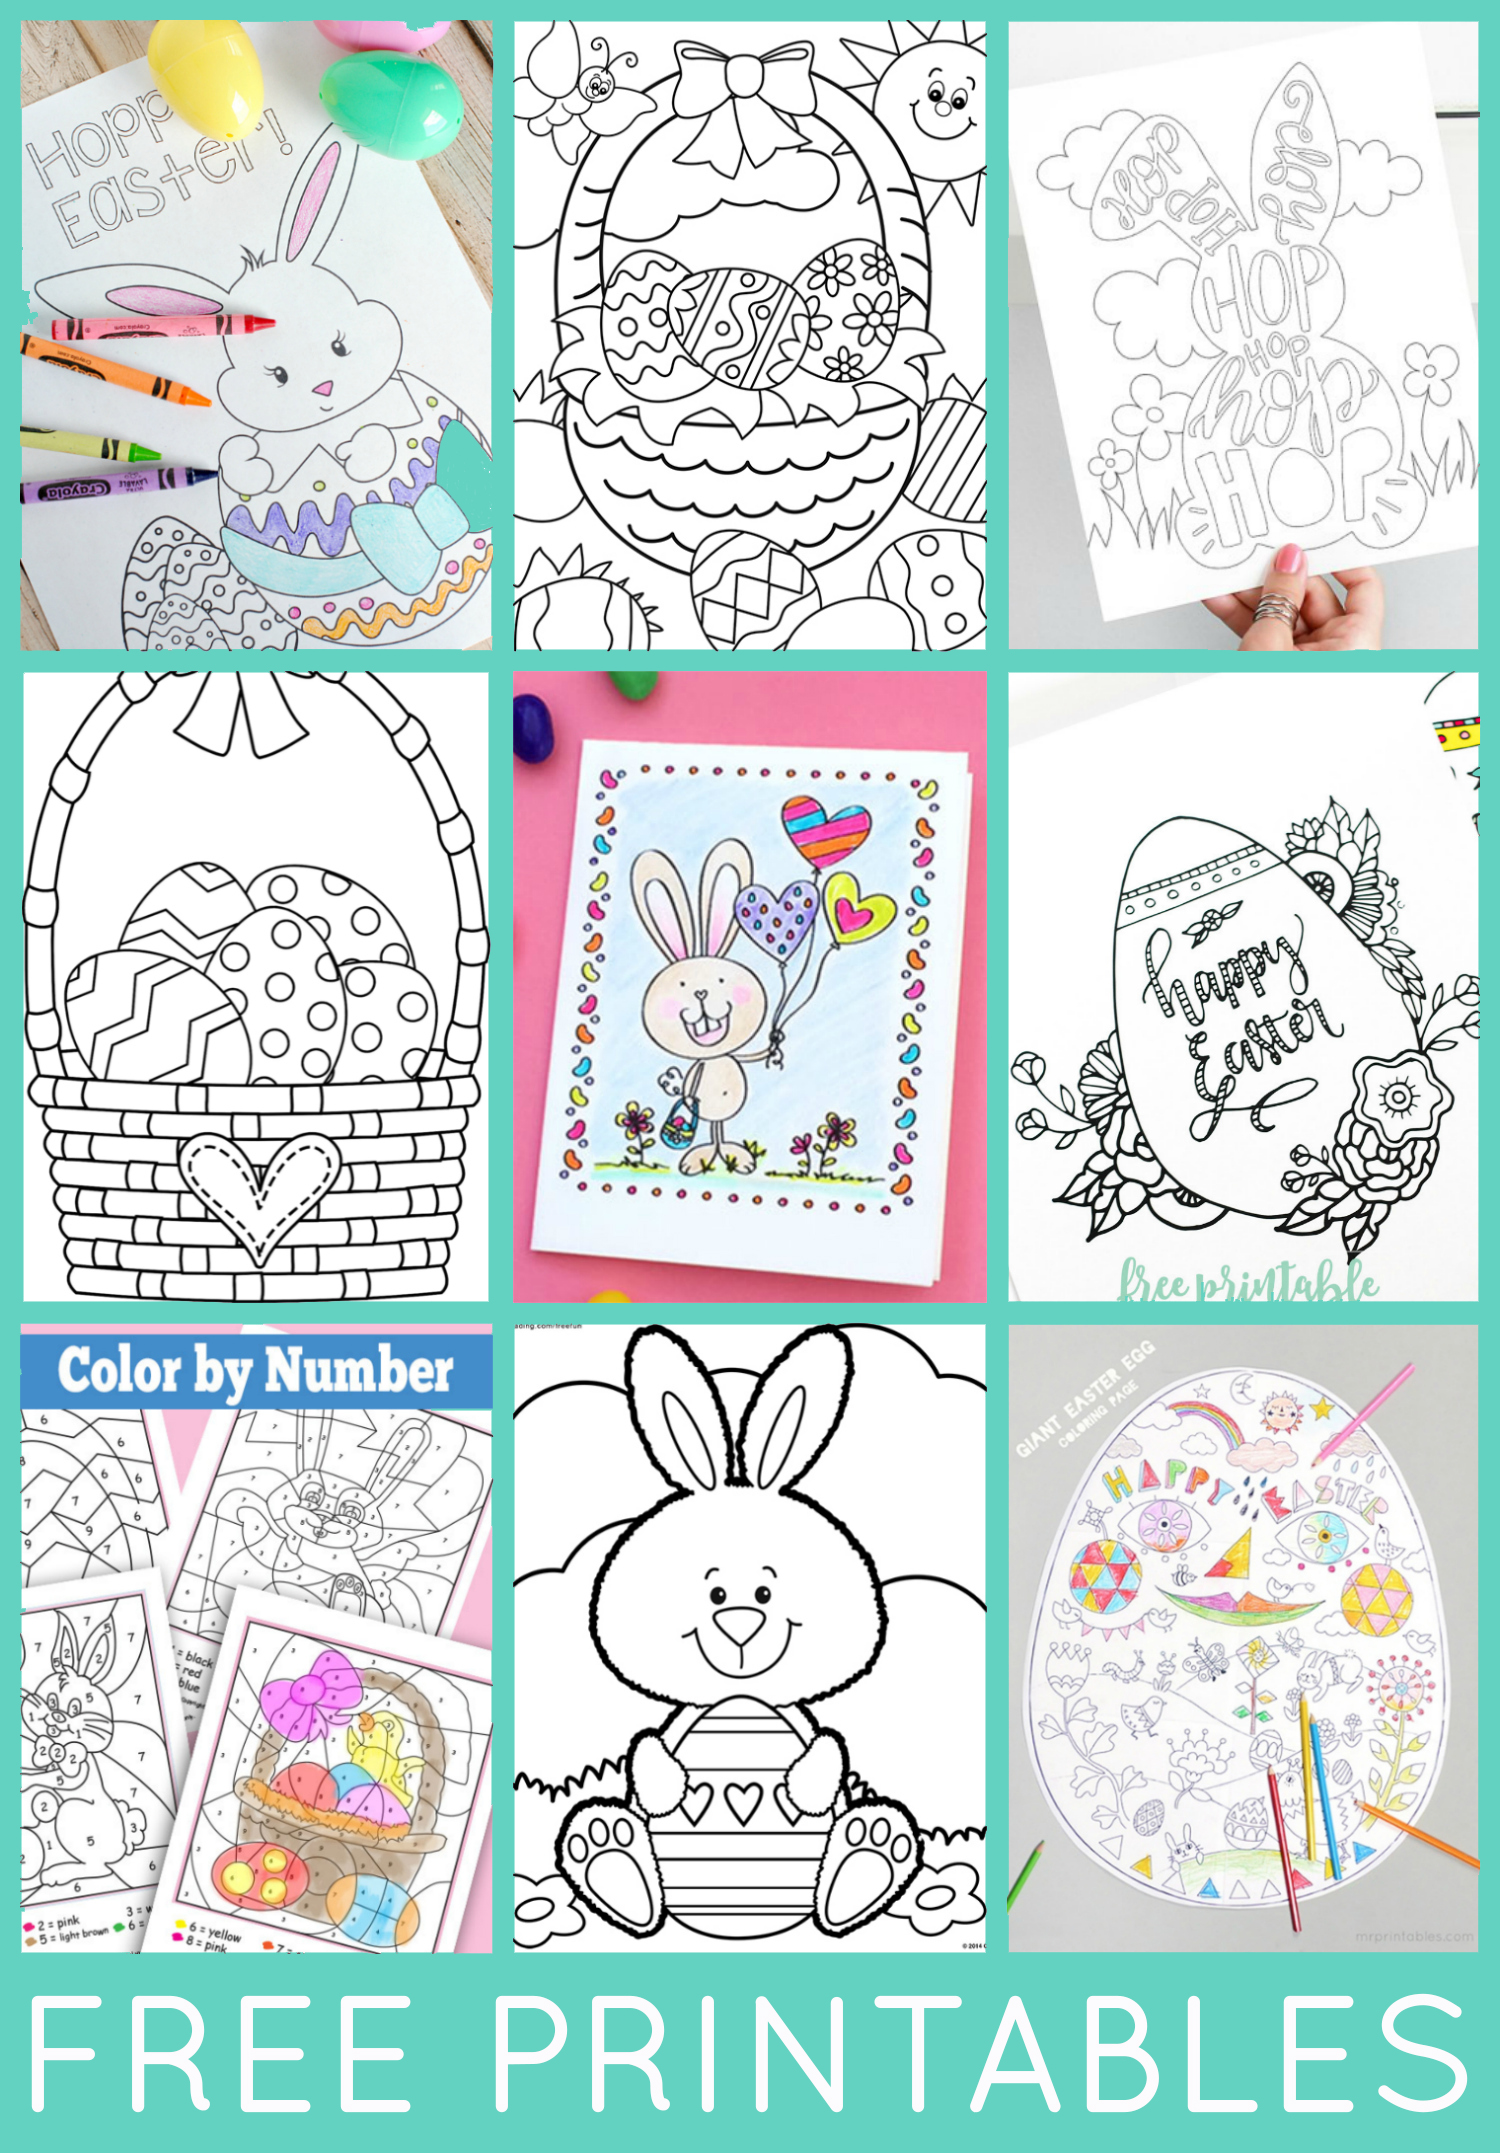 free printable easter coloring pages are fun for kids of all ages easter egg coloring - Egg Coloring Sheet